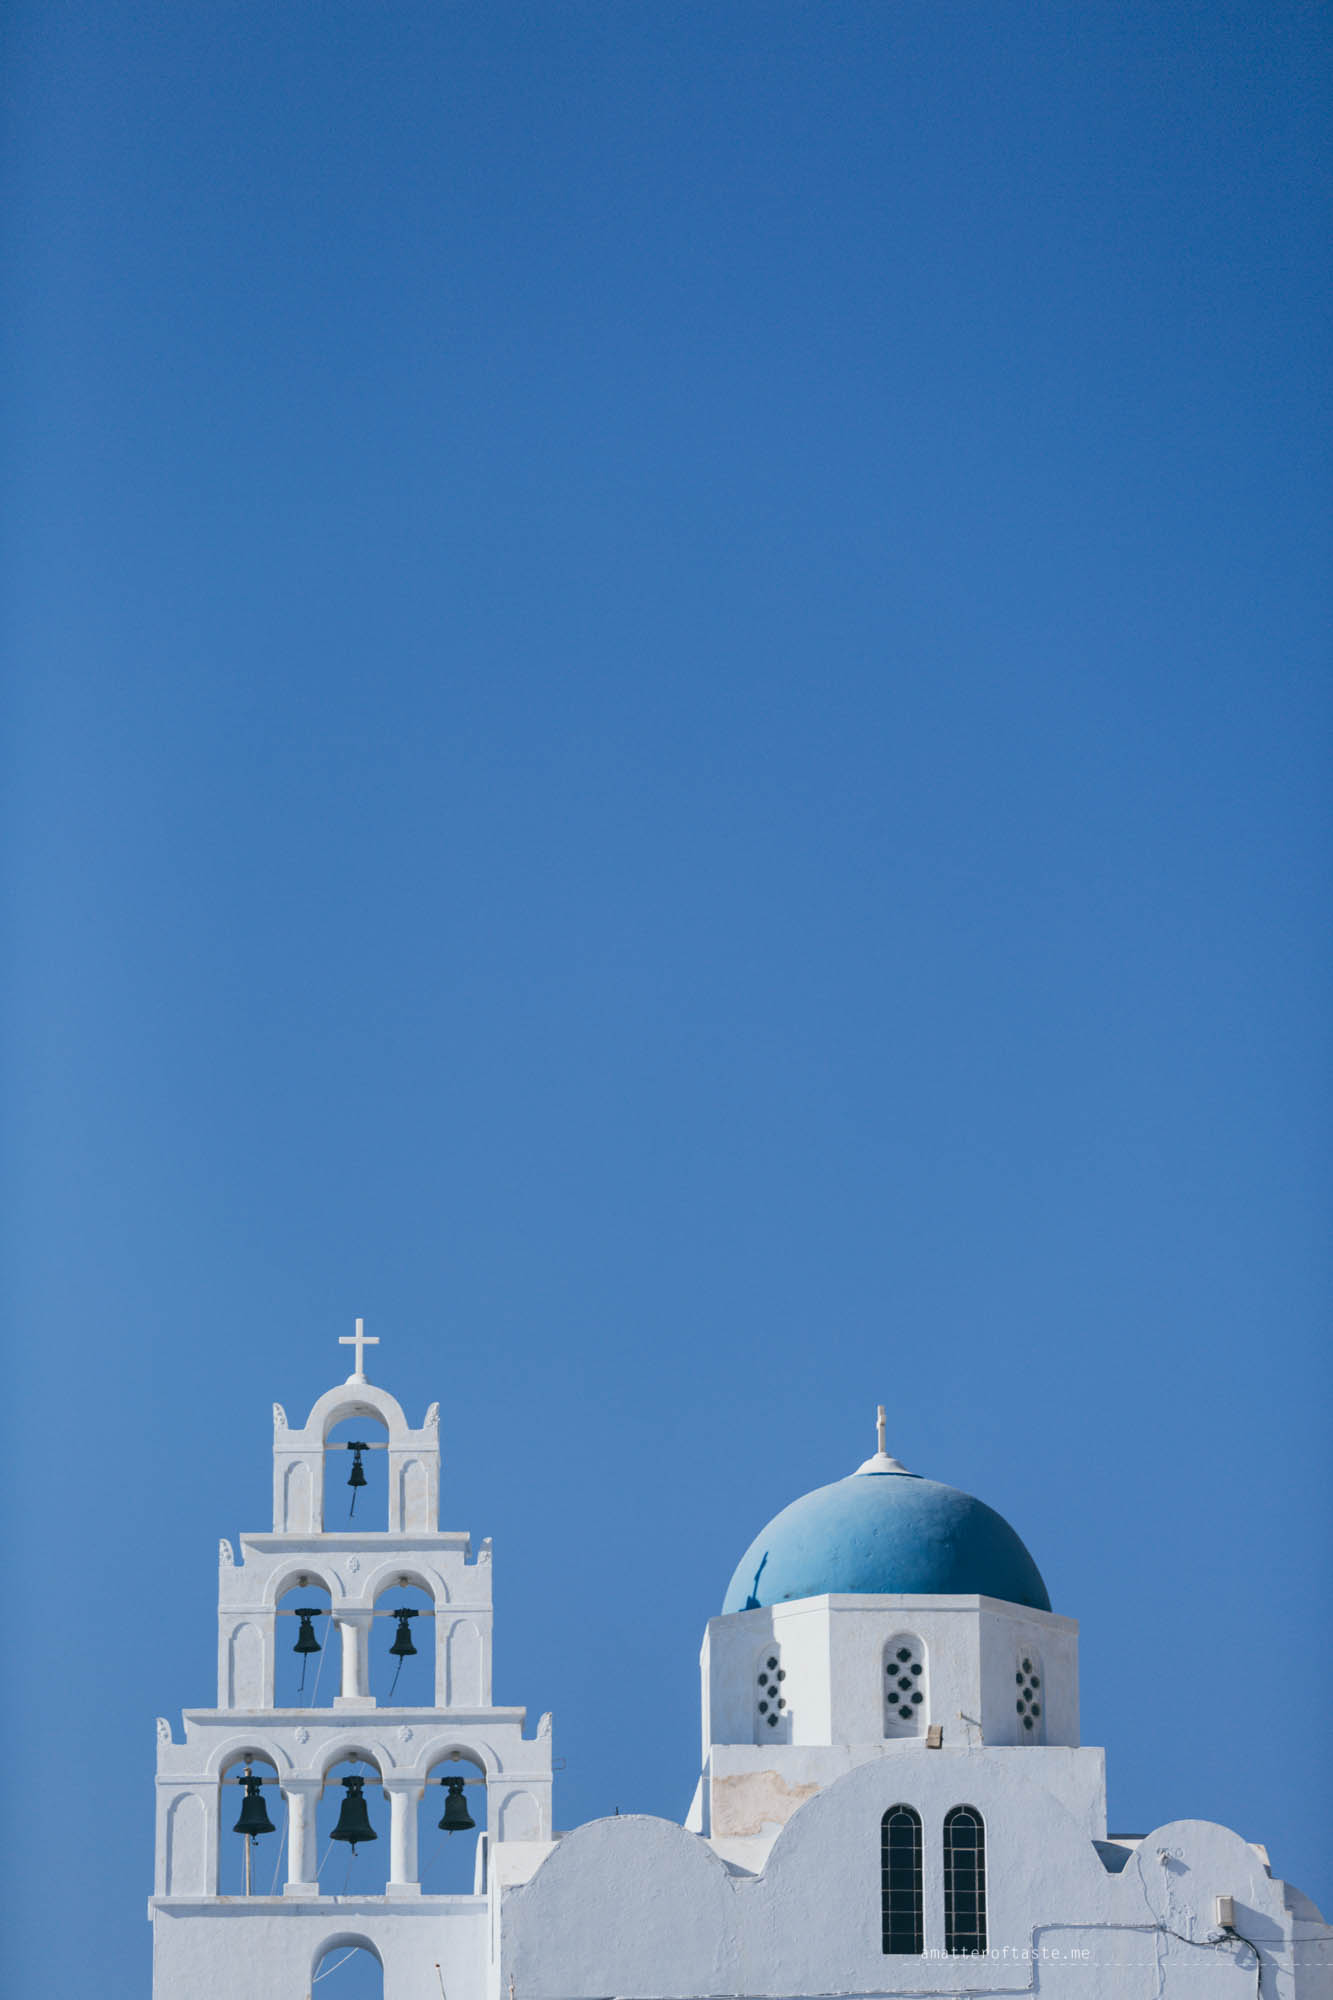 pyrgos-village-church-santorini